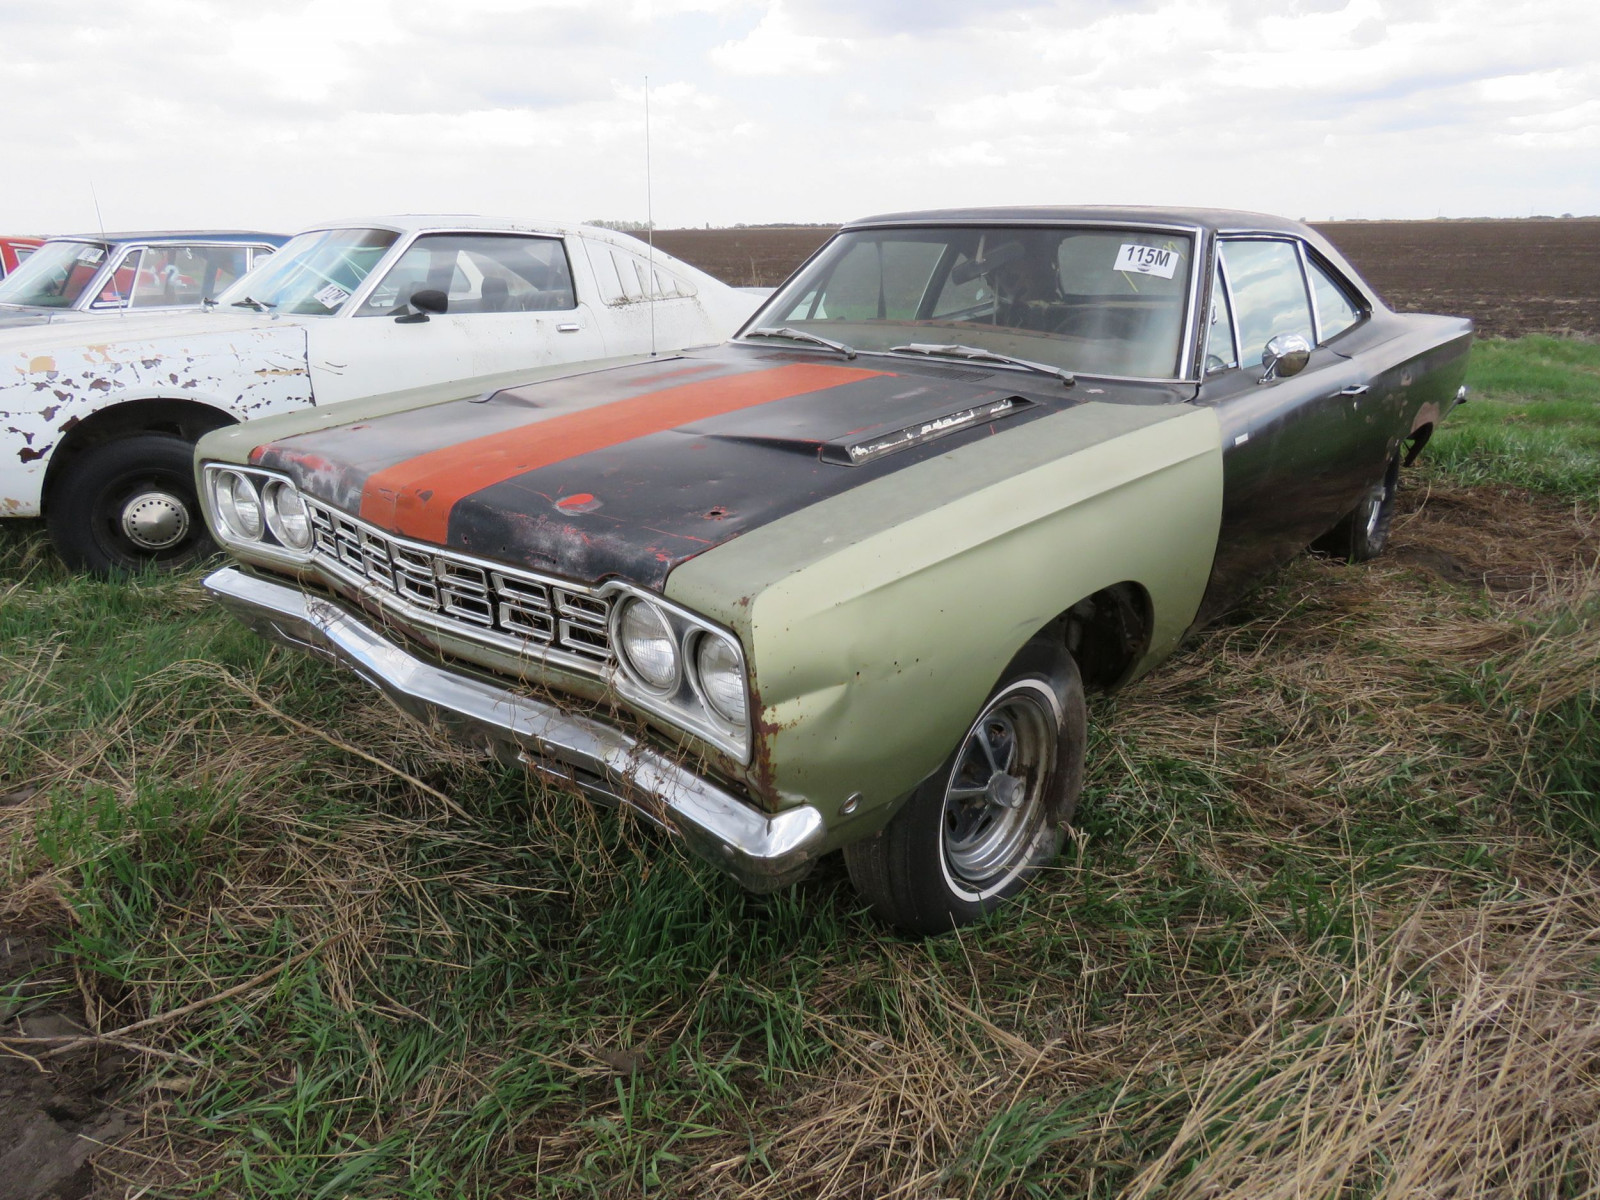 1968 Plymouth Road Runner Coupe - Image 1